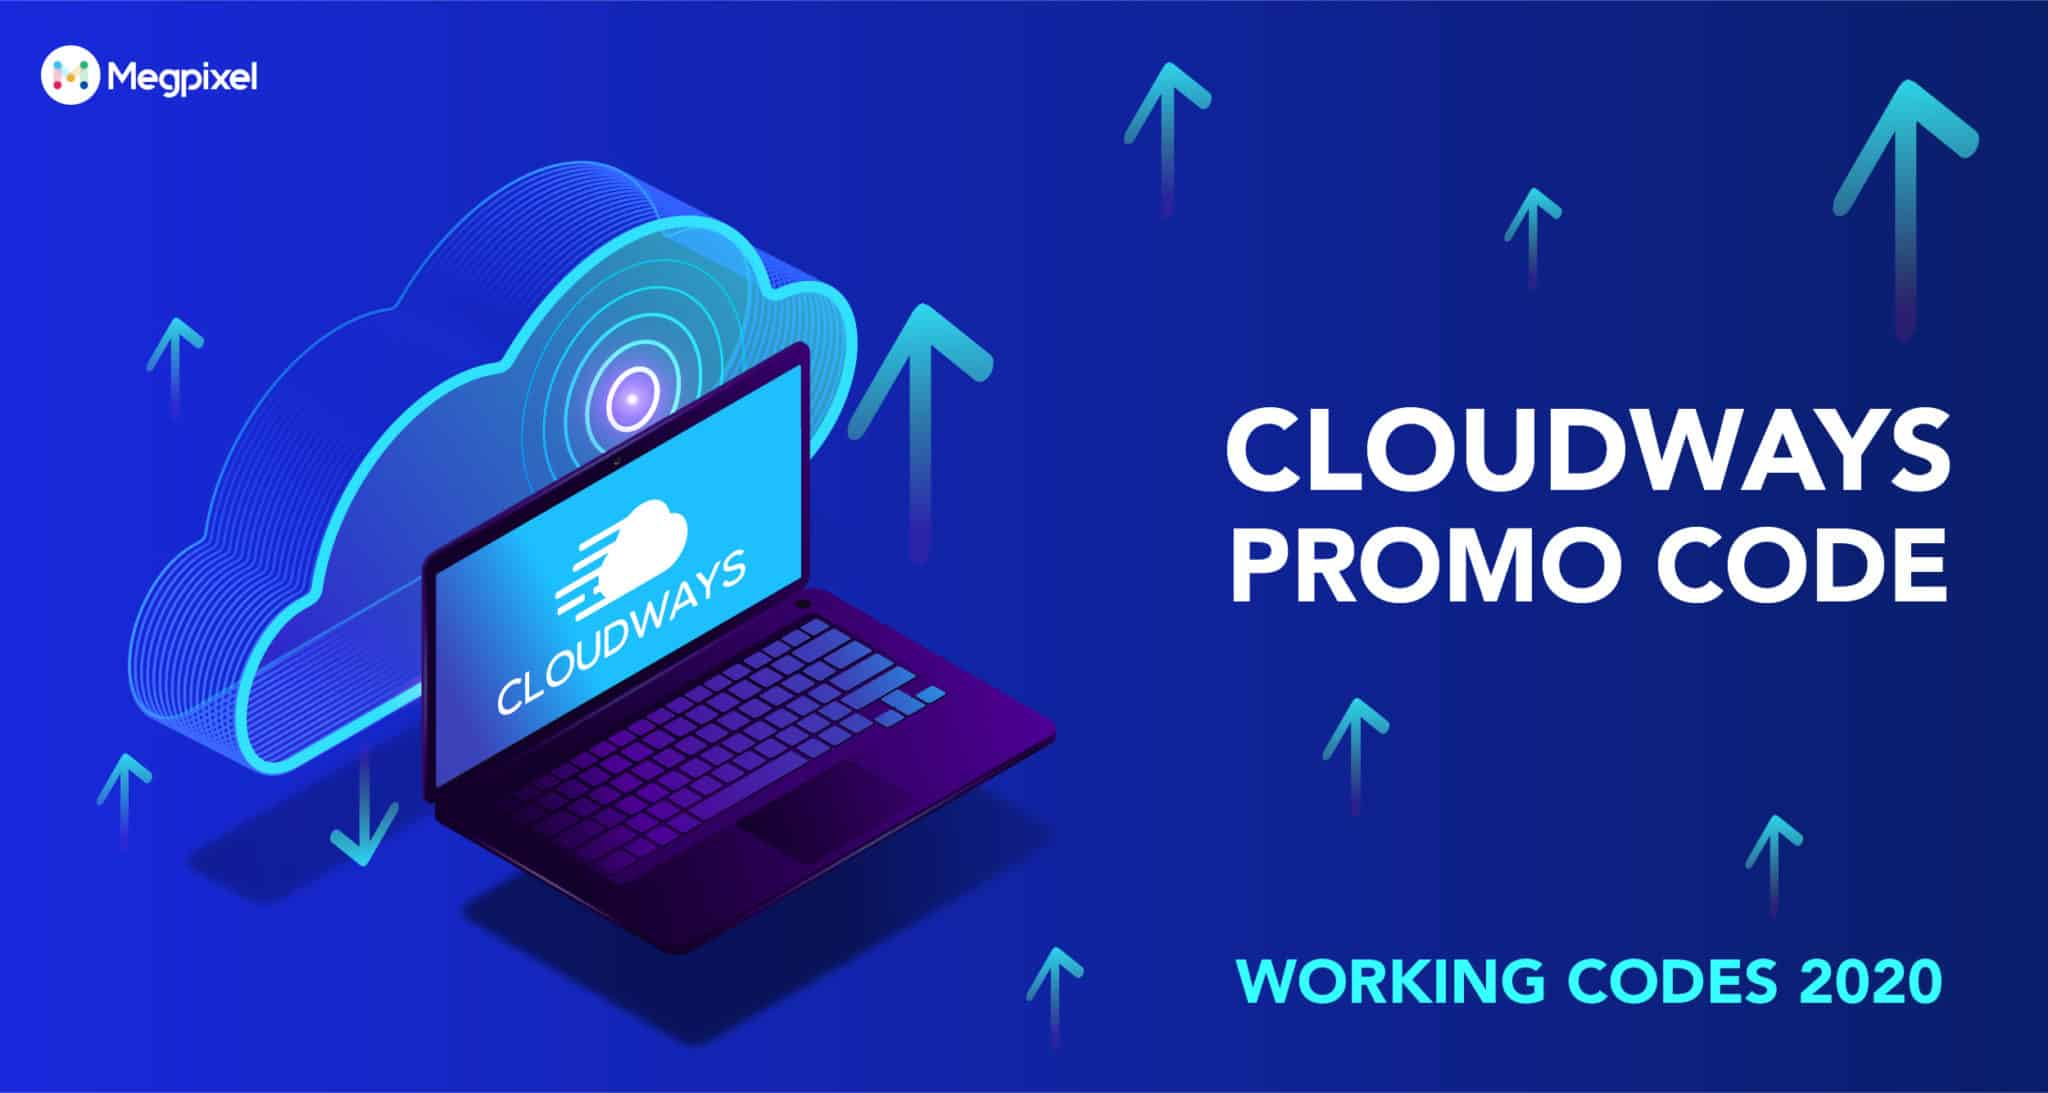 Cloudways Promo Code 2019 + Detailed Review [100% Working Codes]